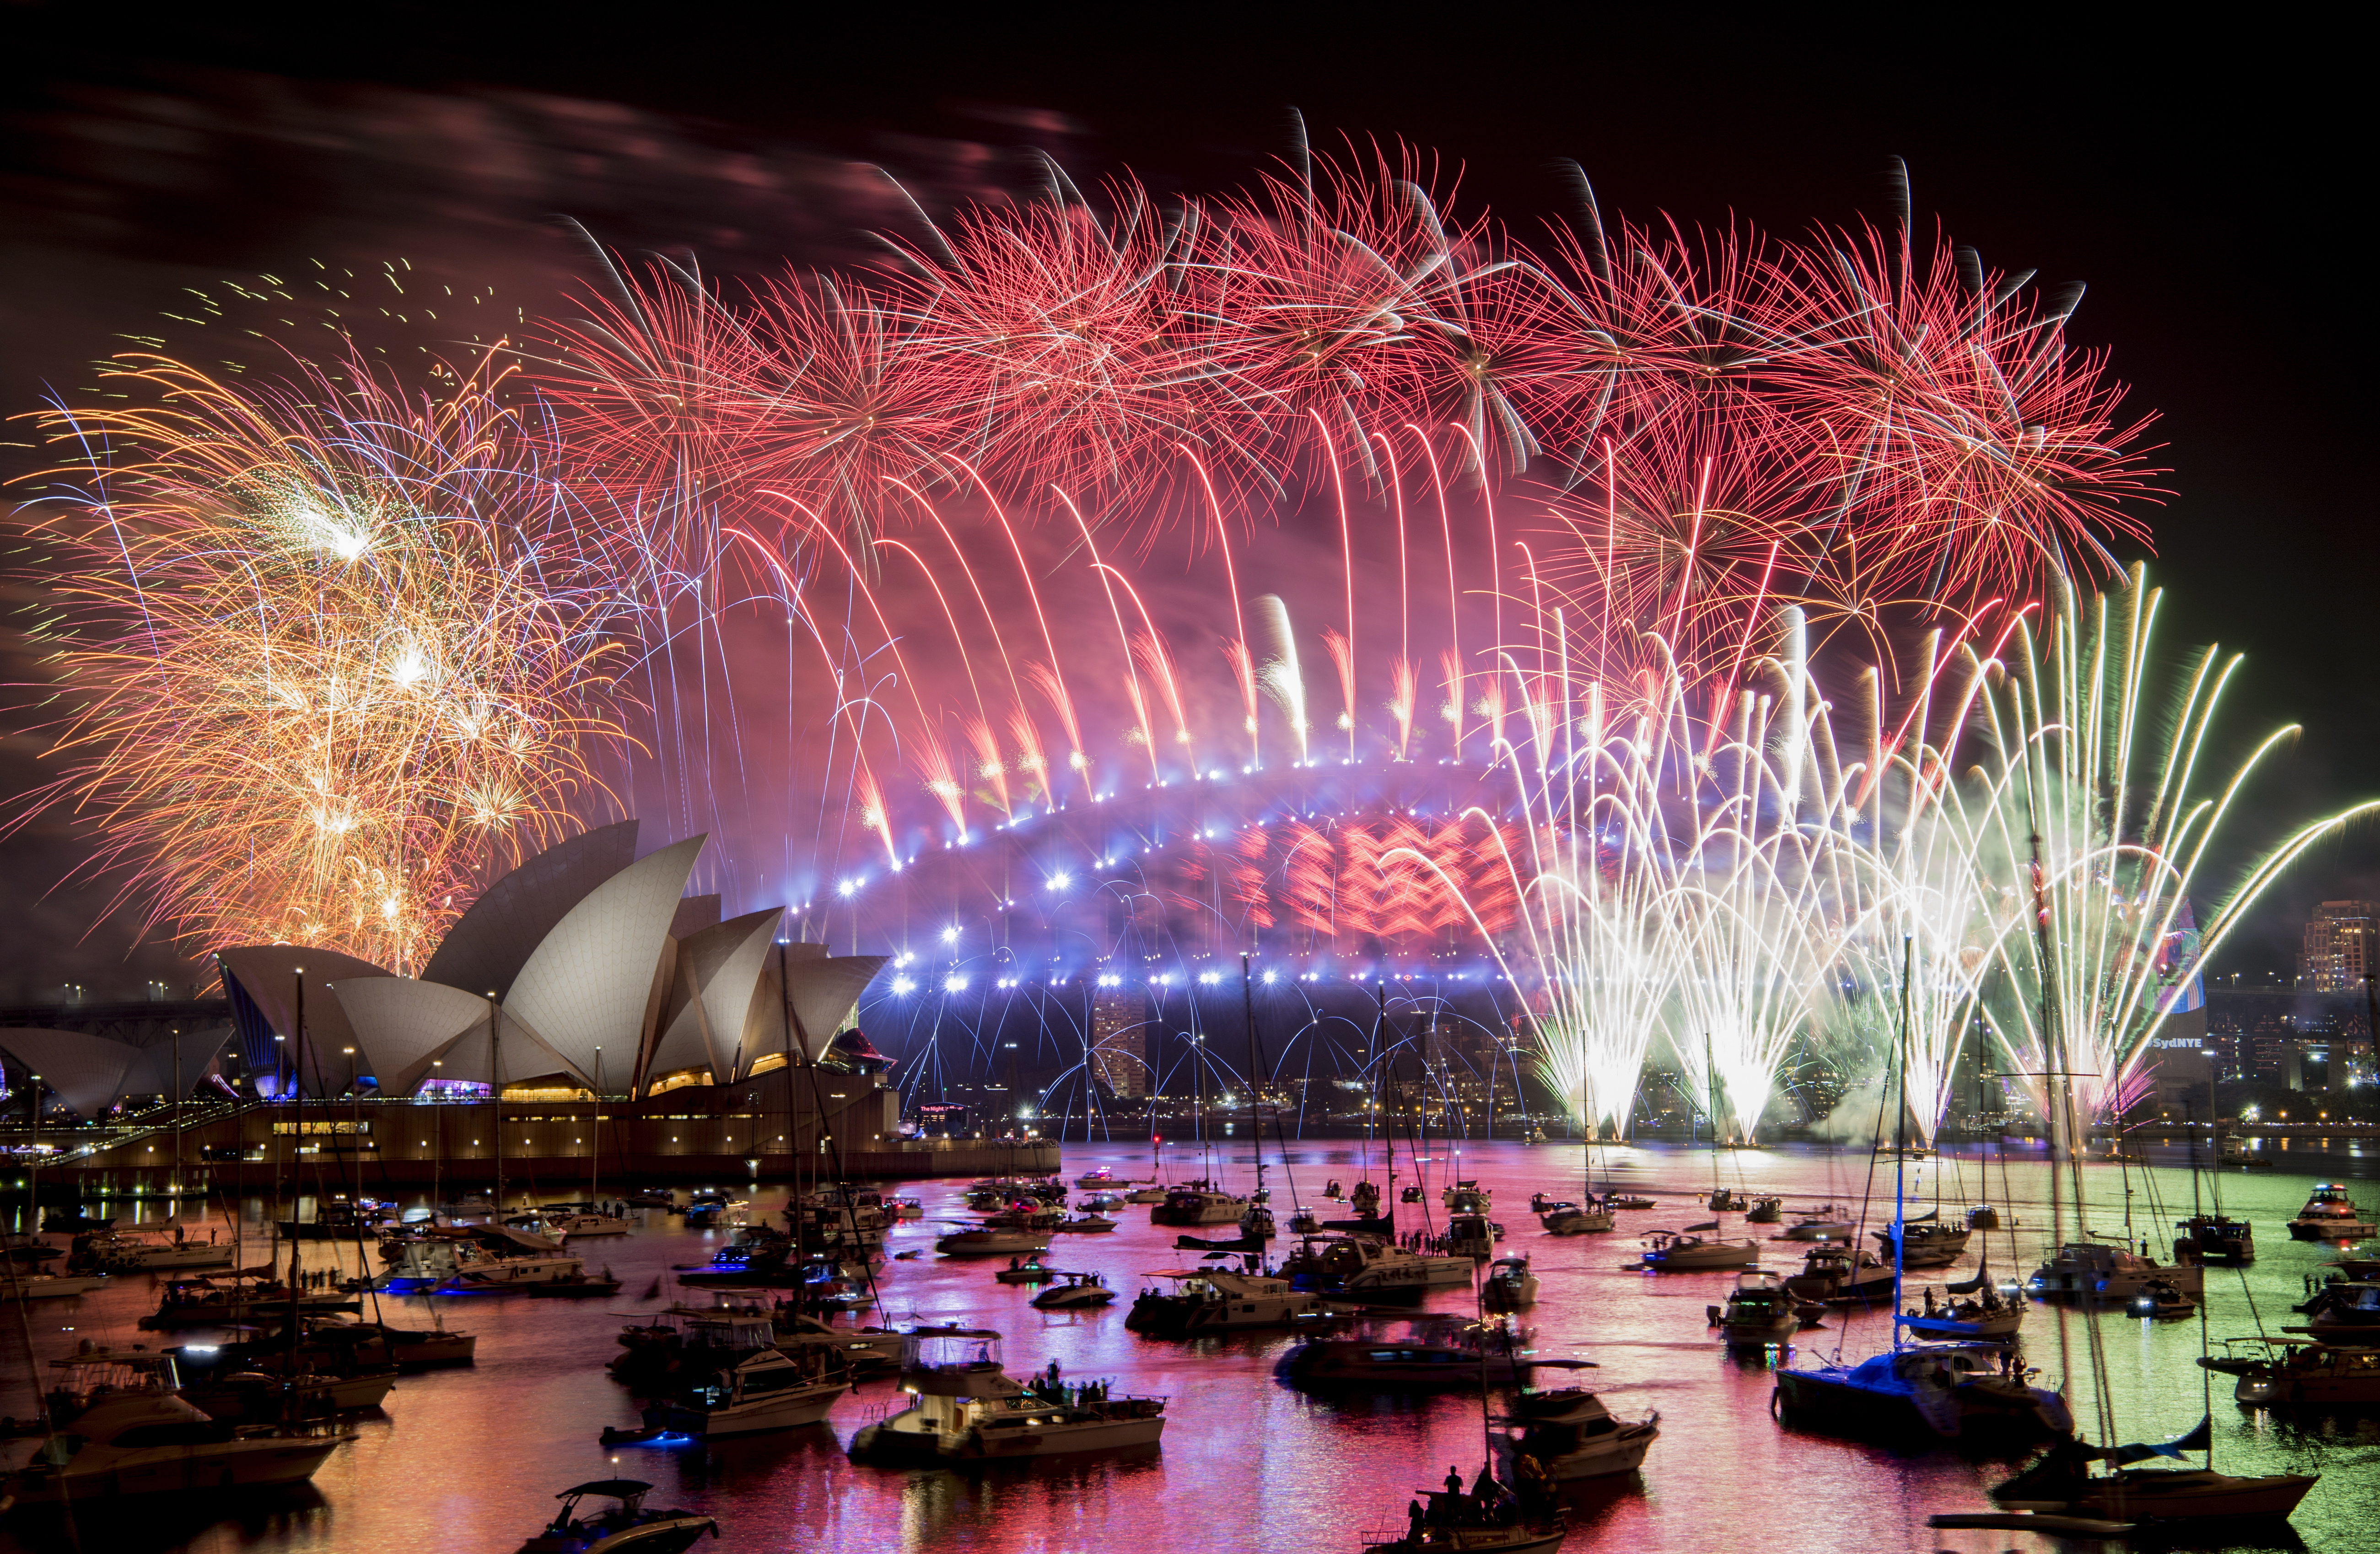 Auckland ushers in New Year with celebratory fireworks at iconic Sky Tower